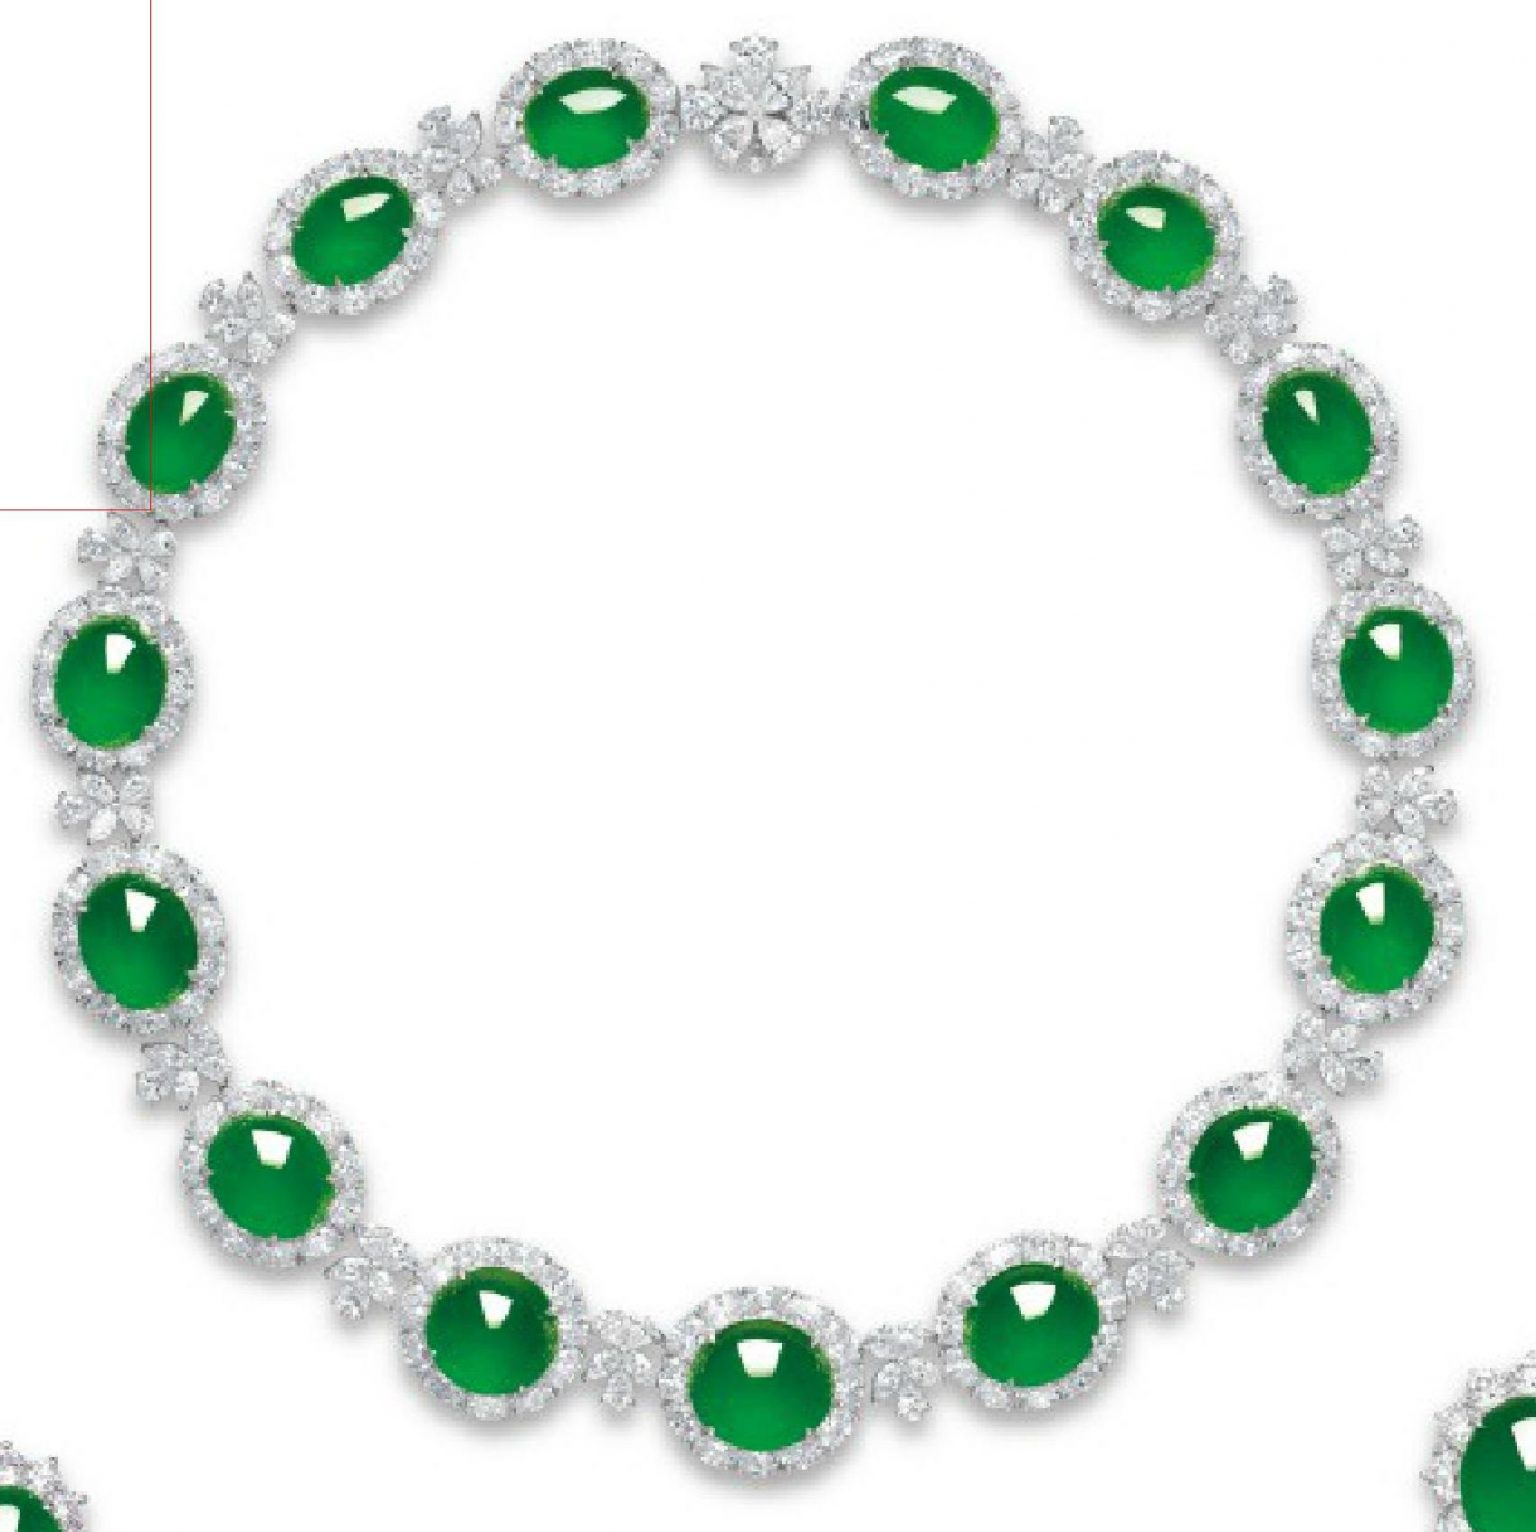 LOT 2060 - NECKLACE OF THE JADEITE AND DIAMOND JEWELRY SUITE